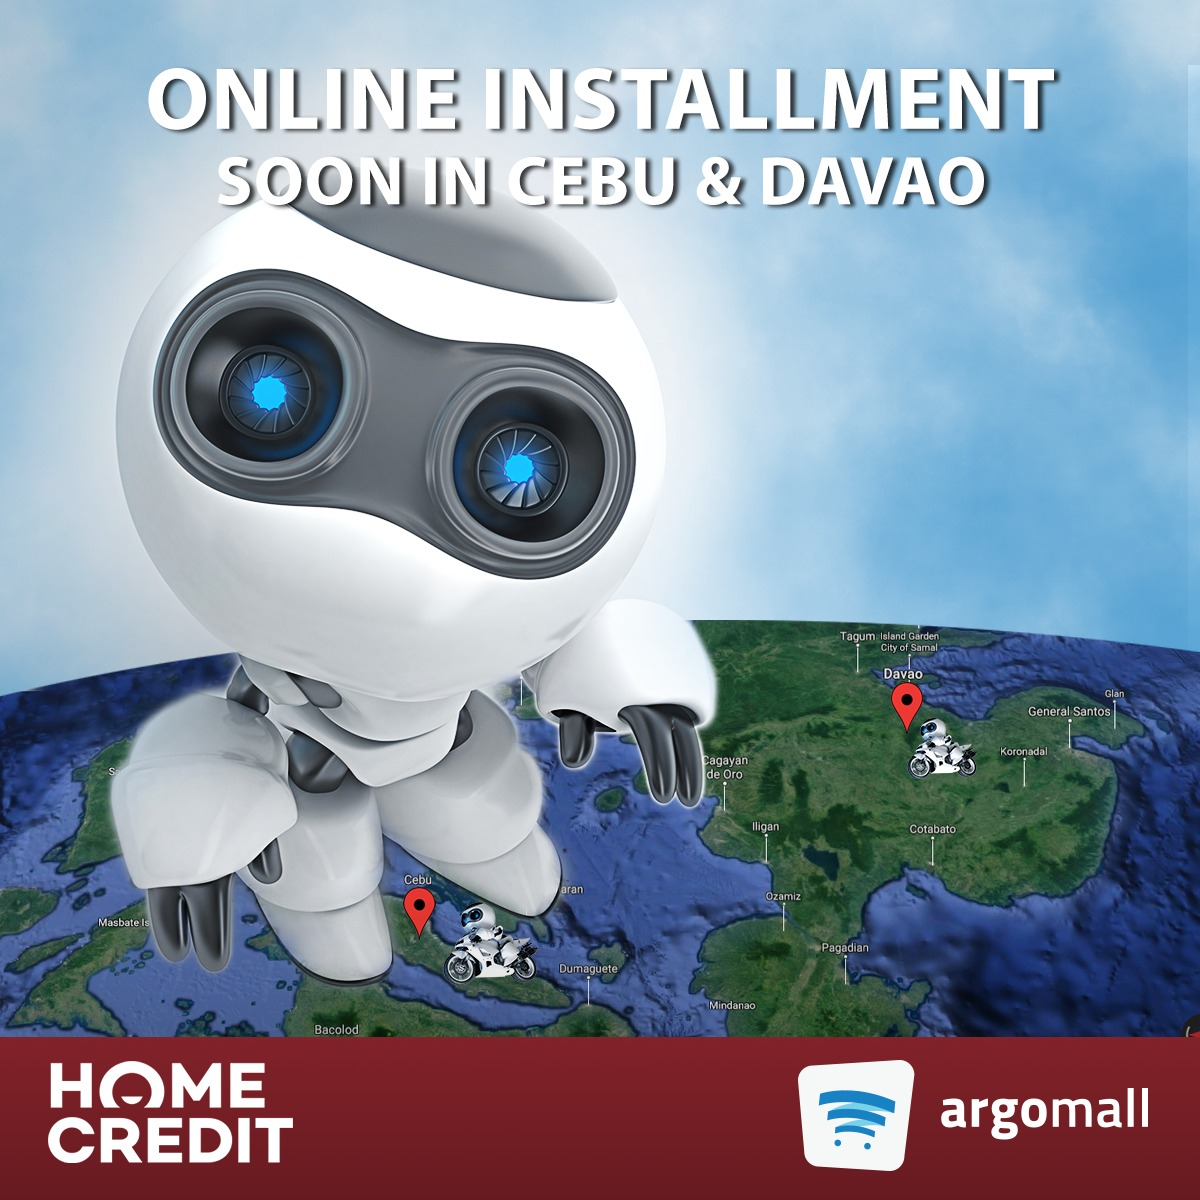 Argomall expands online installment coverage to Cebu and Davao